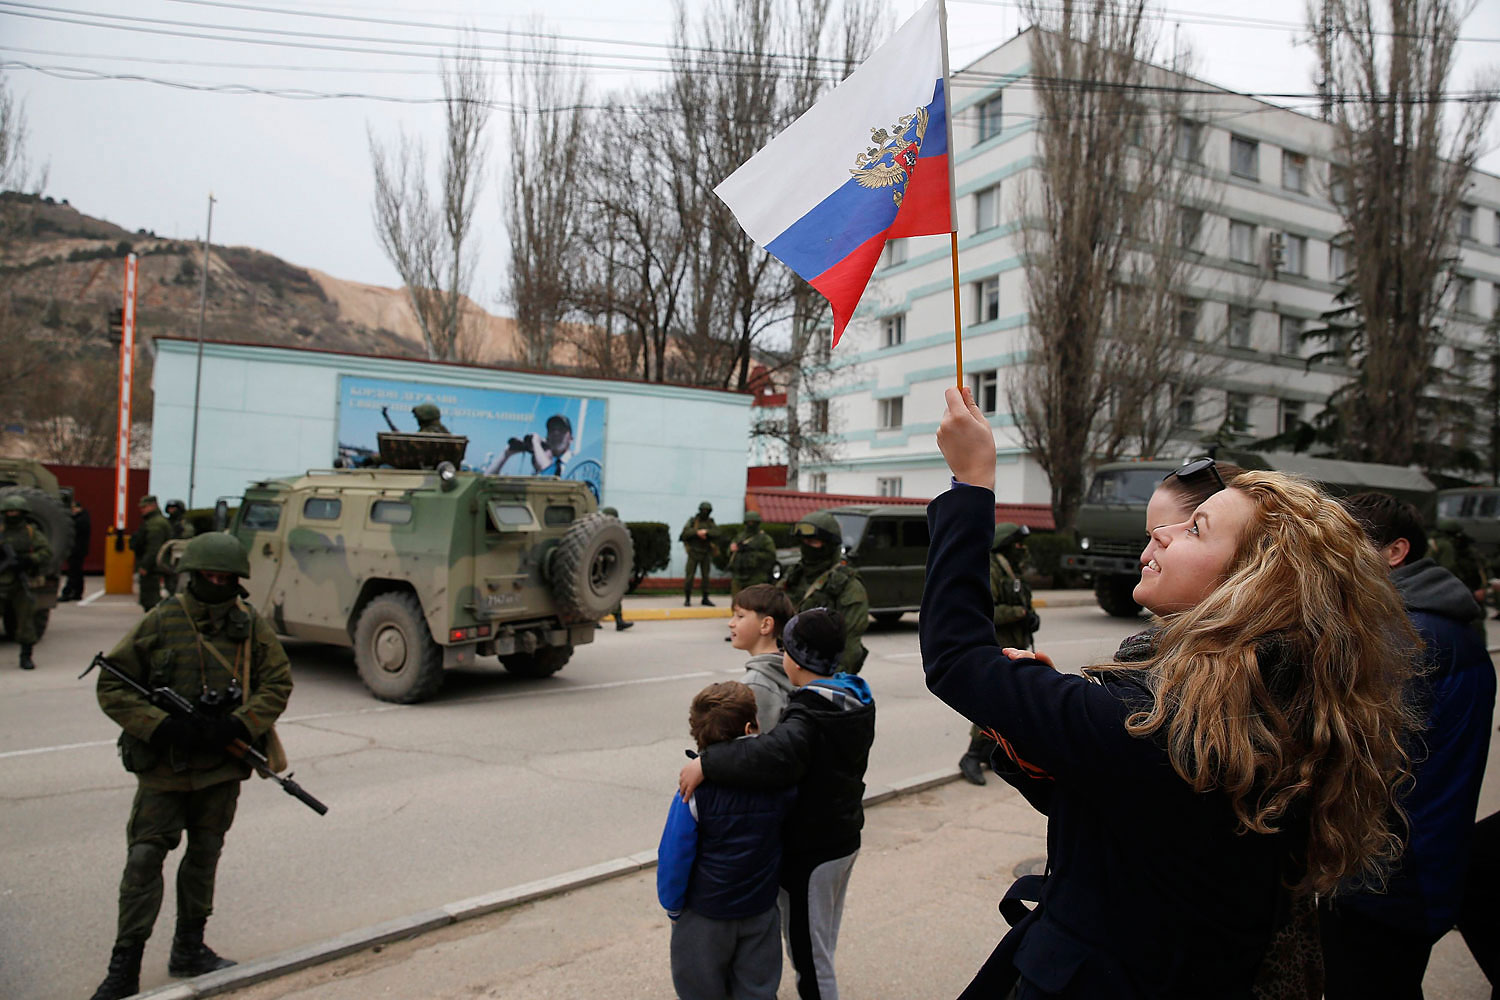 A woman waves a Russian flag as armed servicemen wait near Russian army vehicles outside a Ukrainian border guard post in the Crimean town of Balaclava March 1, 2014.